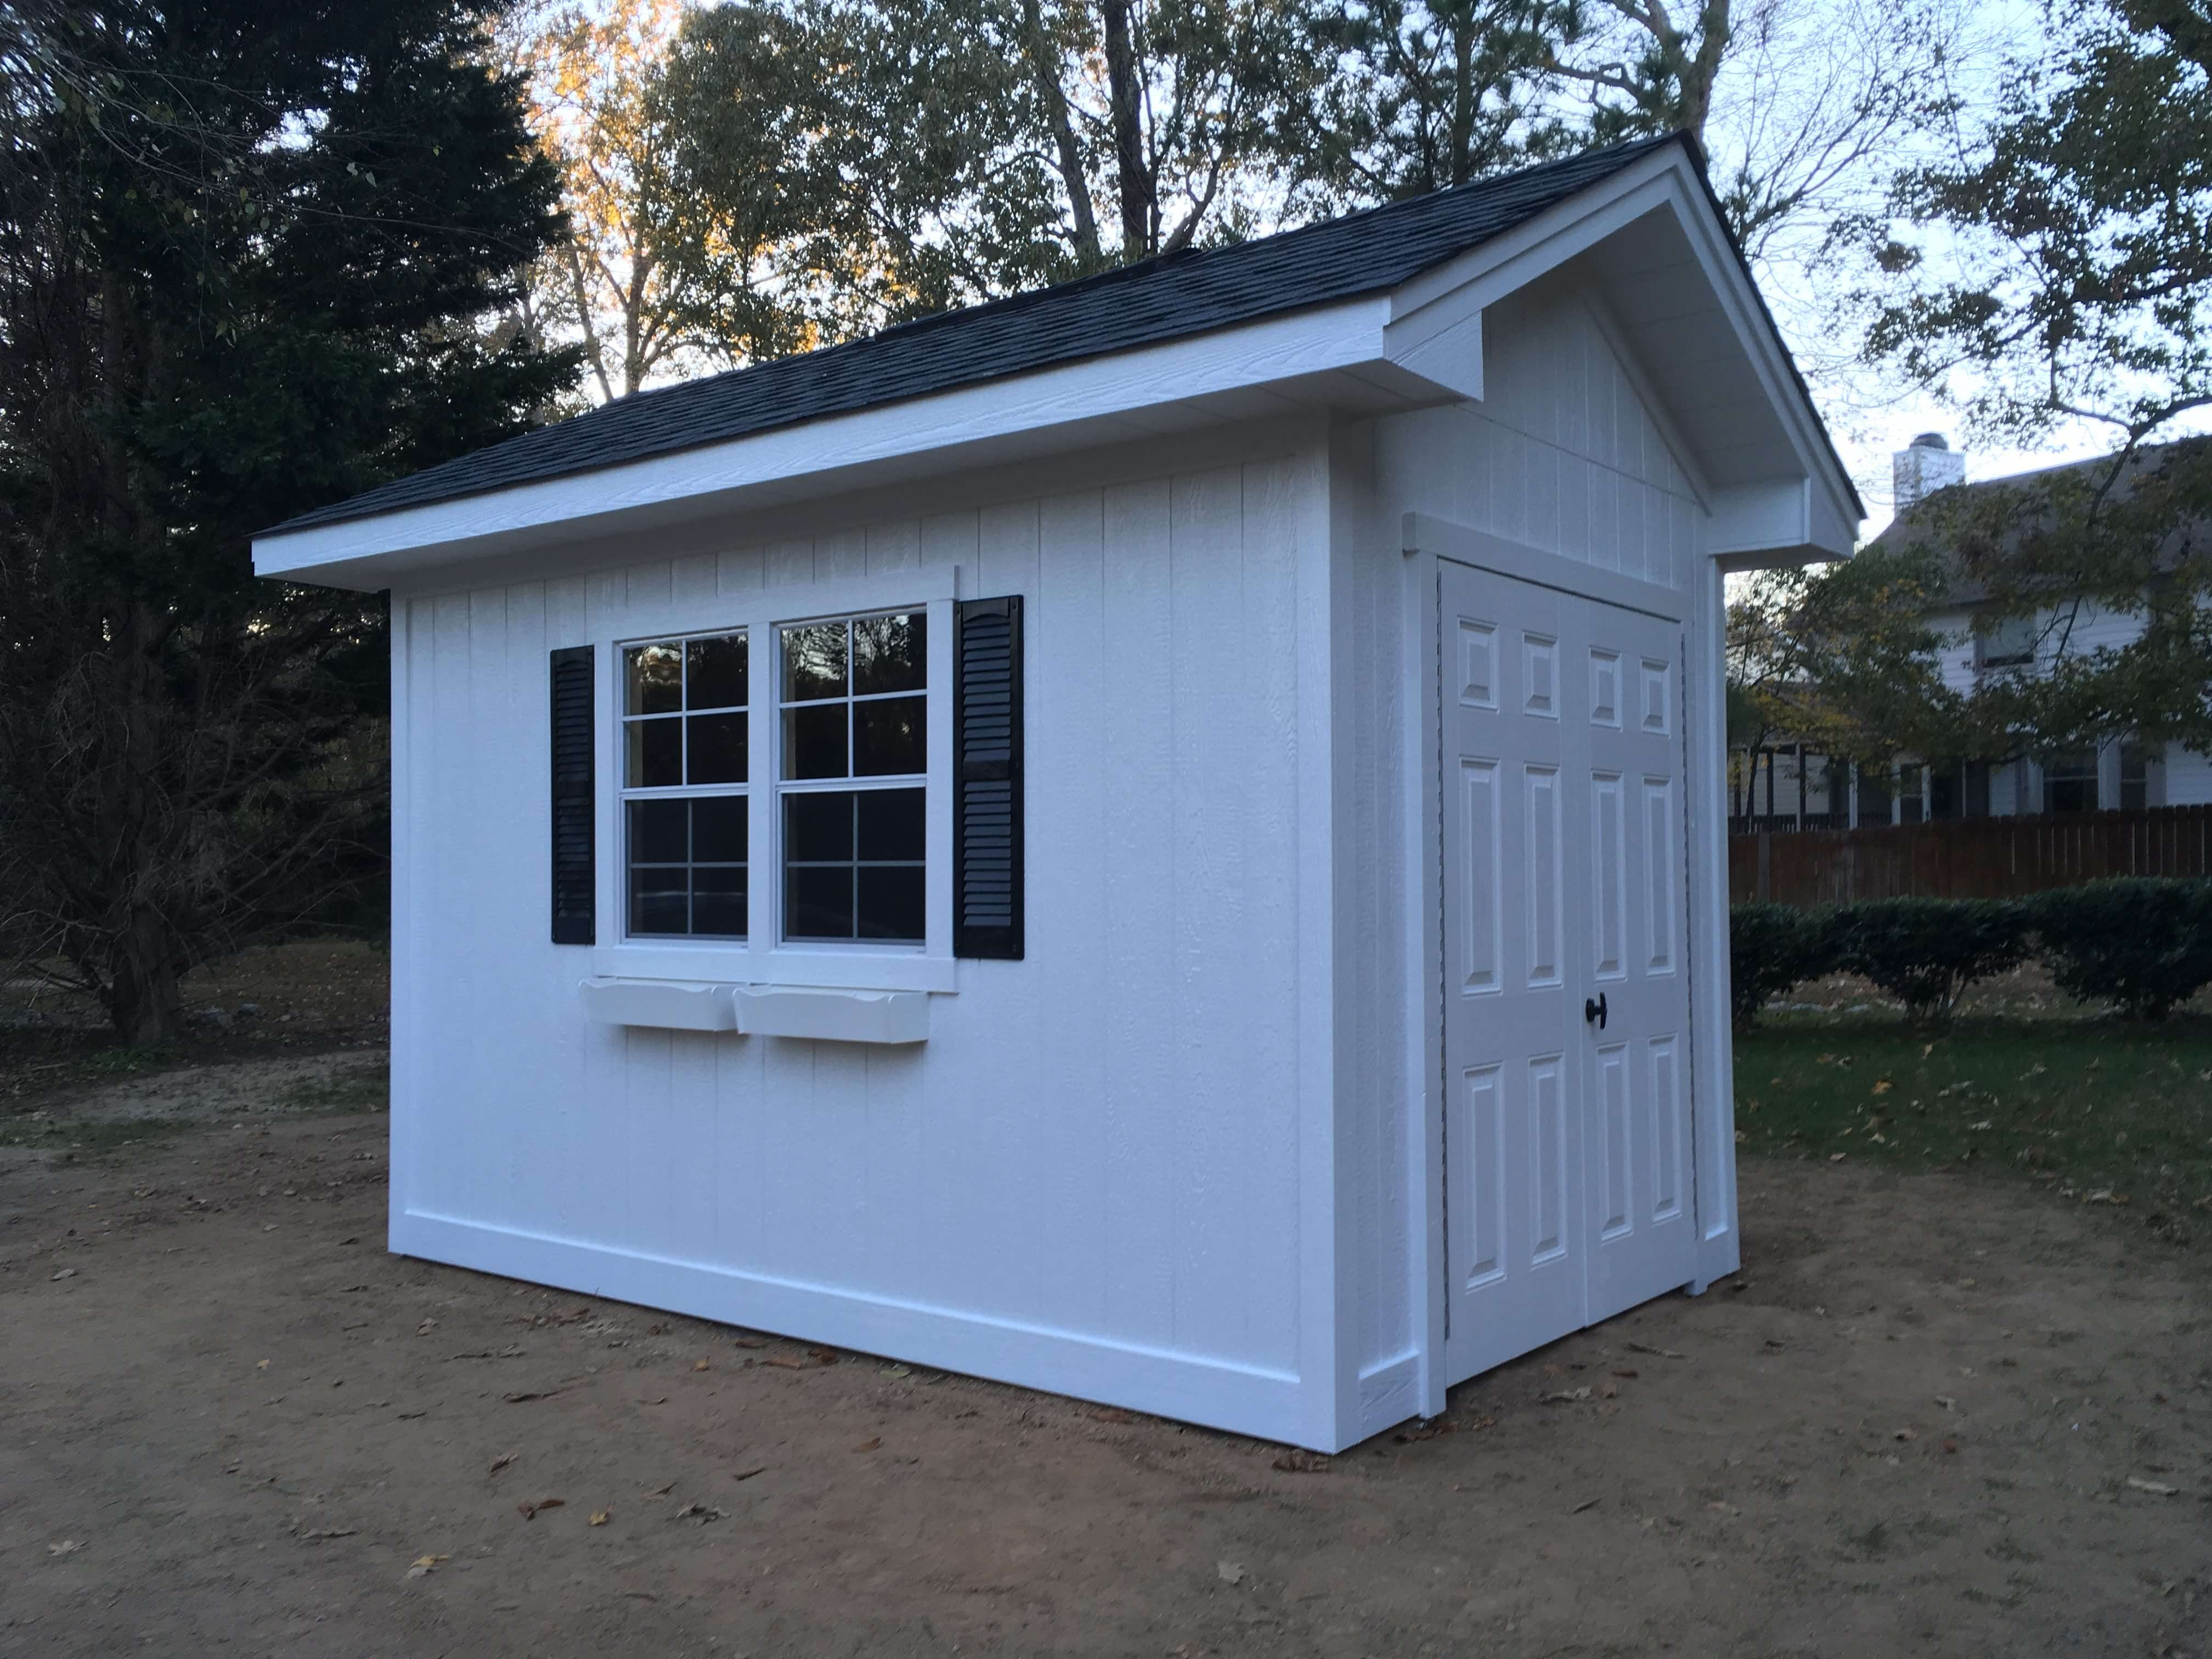 pool storage raleigh a horizon prefabricated dairiakymber sheds structures houses hip house roof frame images shed dormer stunning com